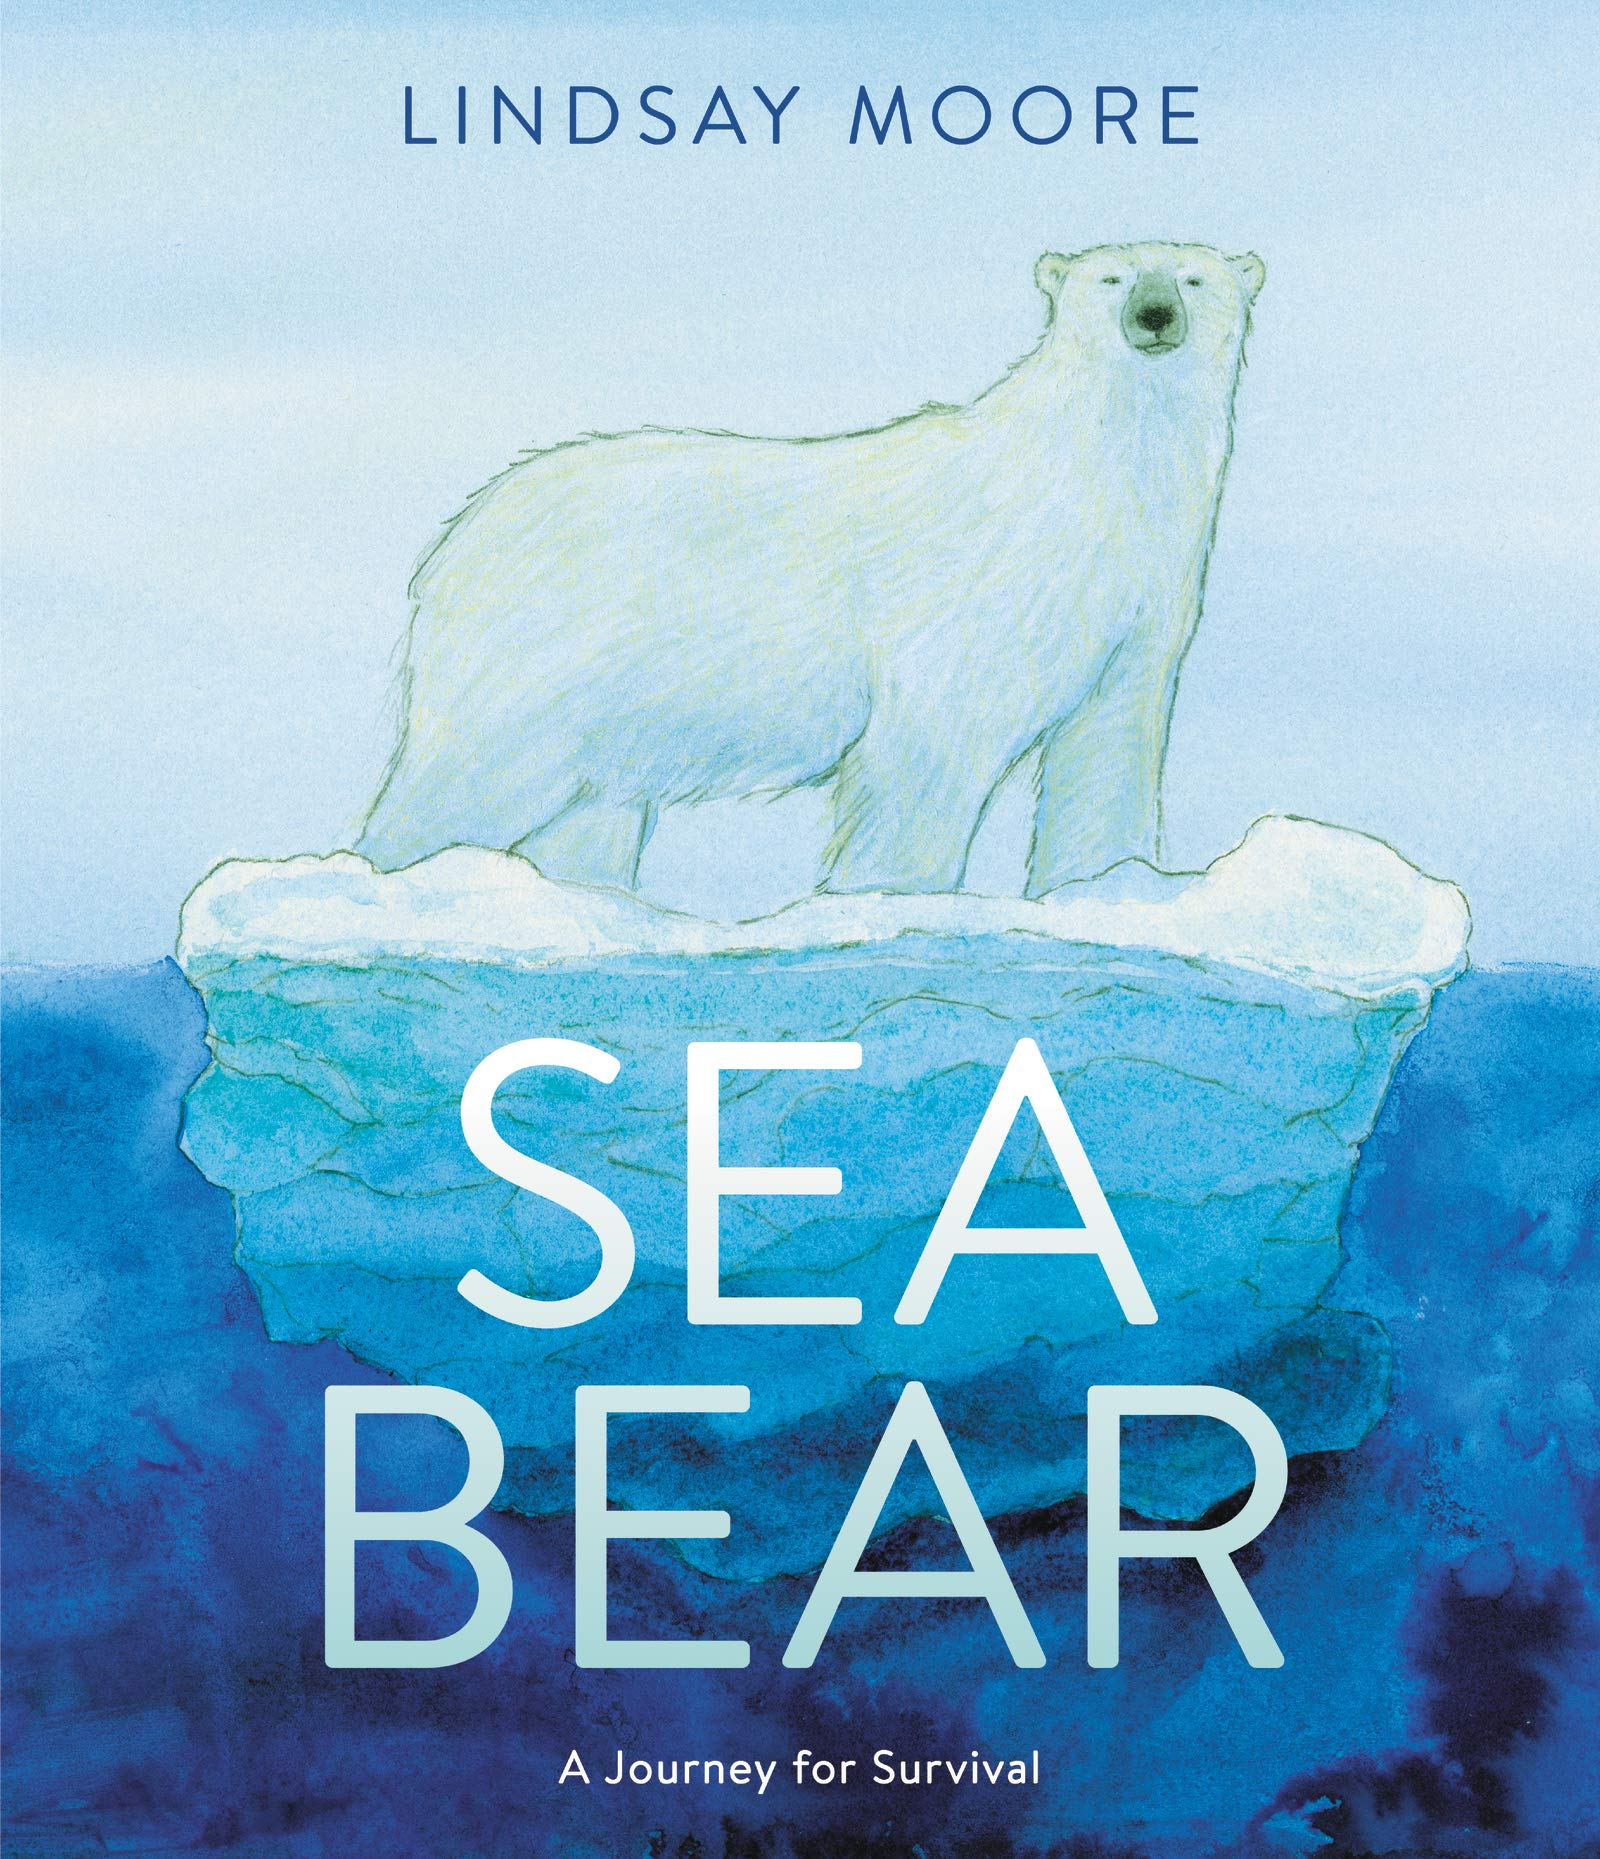 Image result for sea bear lindsay moore amazon